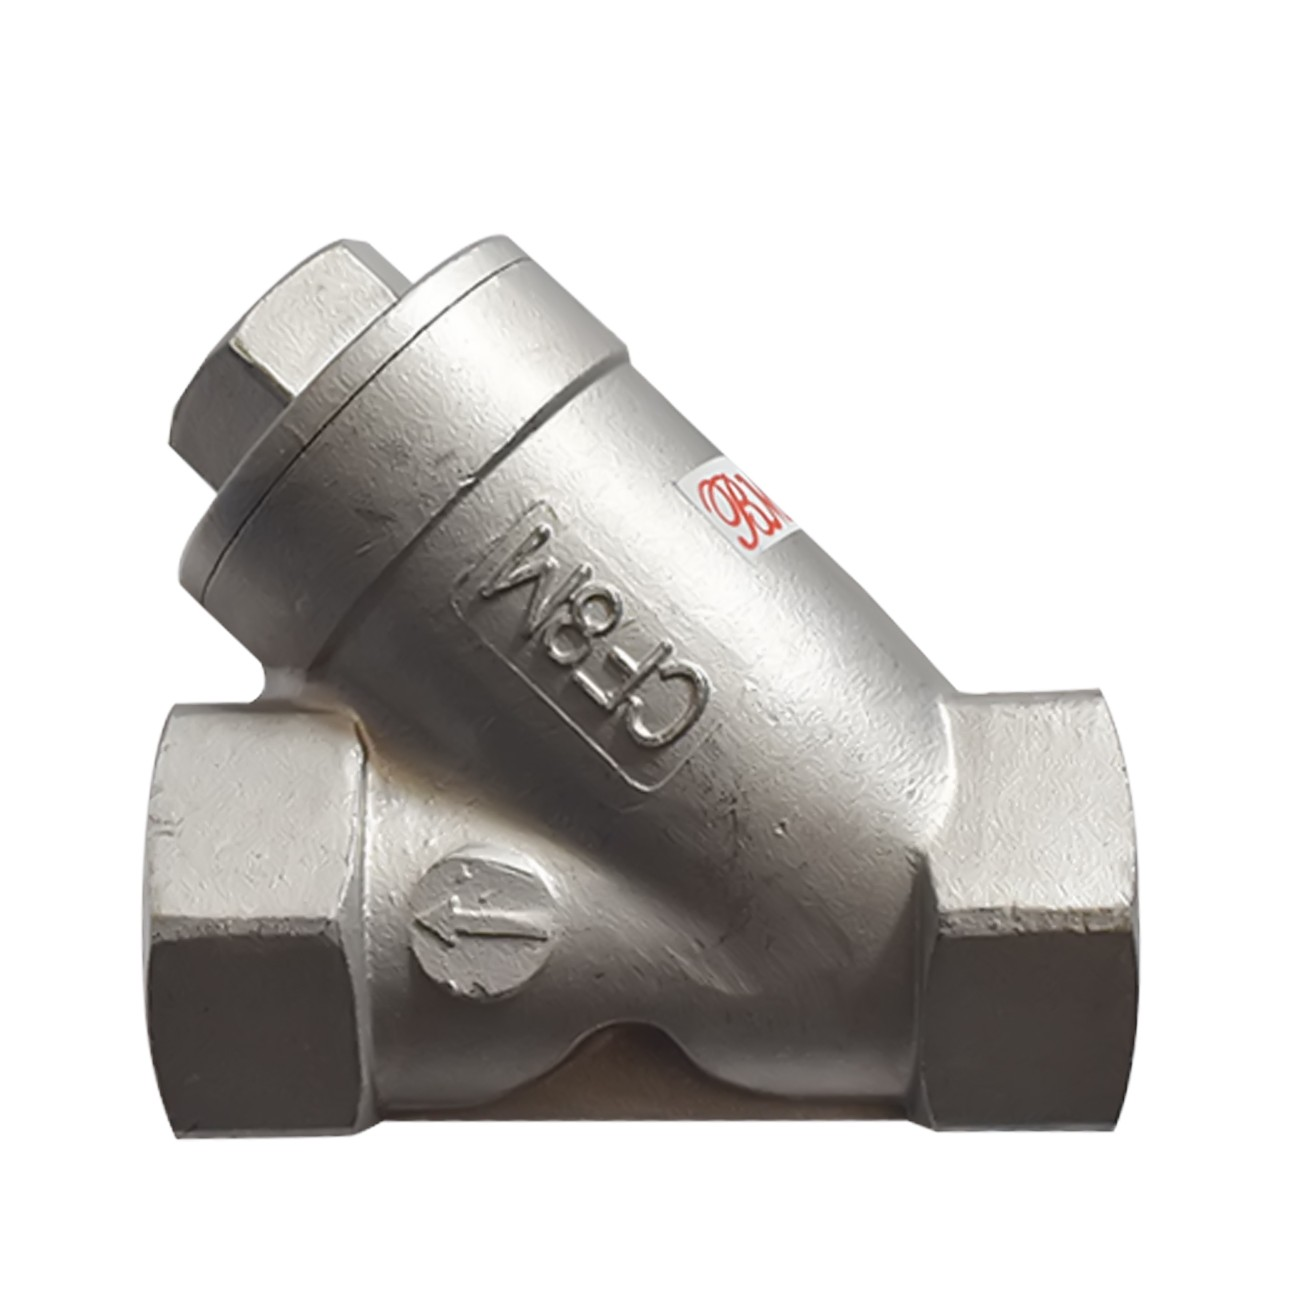 VTV Class 200 Y Strainer Size 1inch Stainless Steel